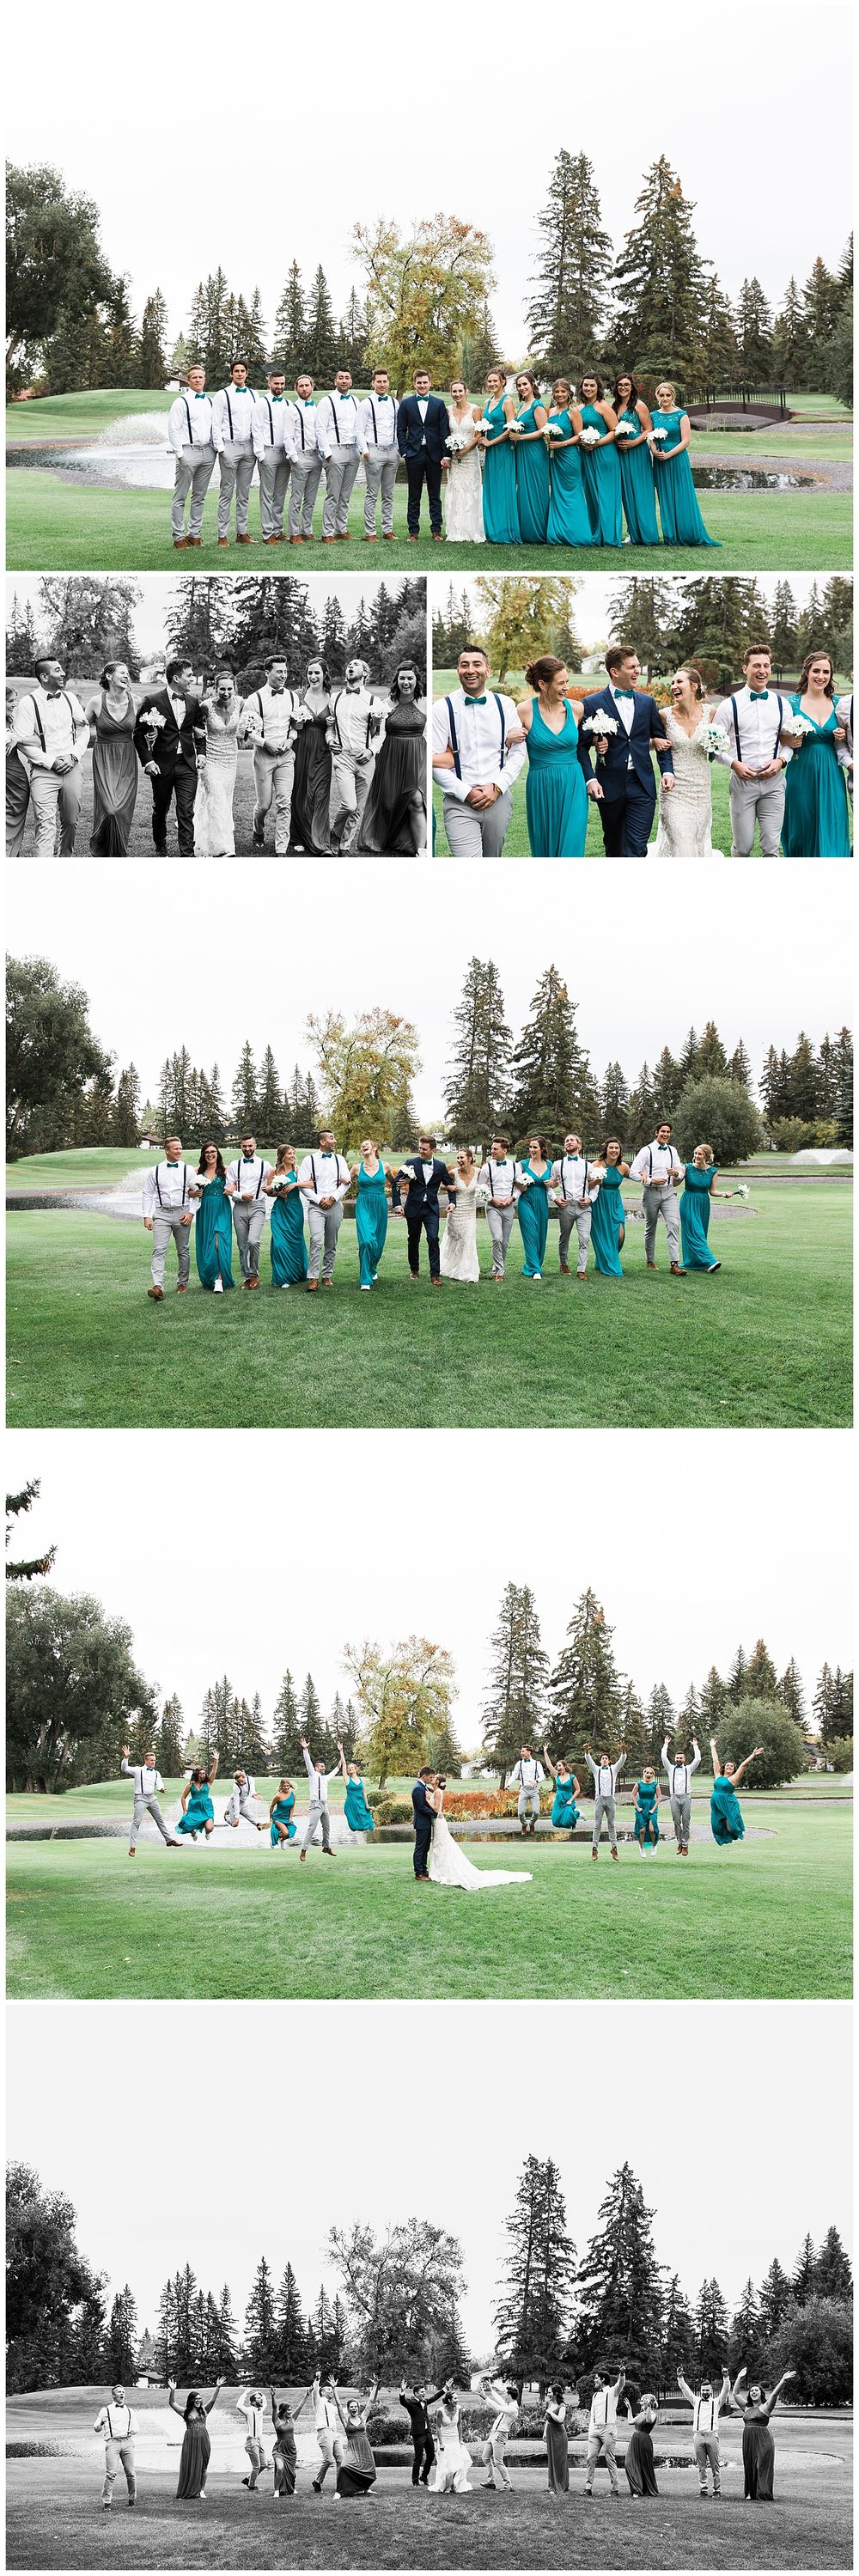 Calgary-fall-wedding-photographer-willow-park-golf-country-club-_0011.jpg